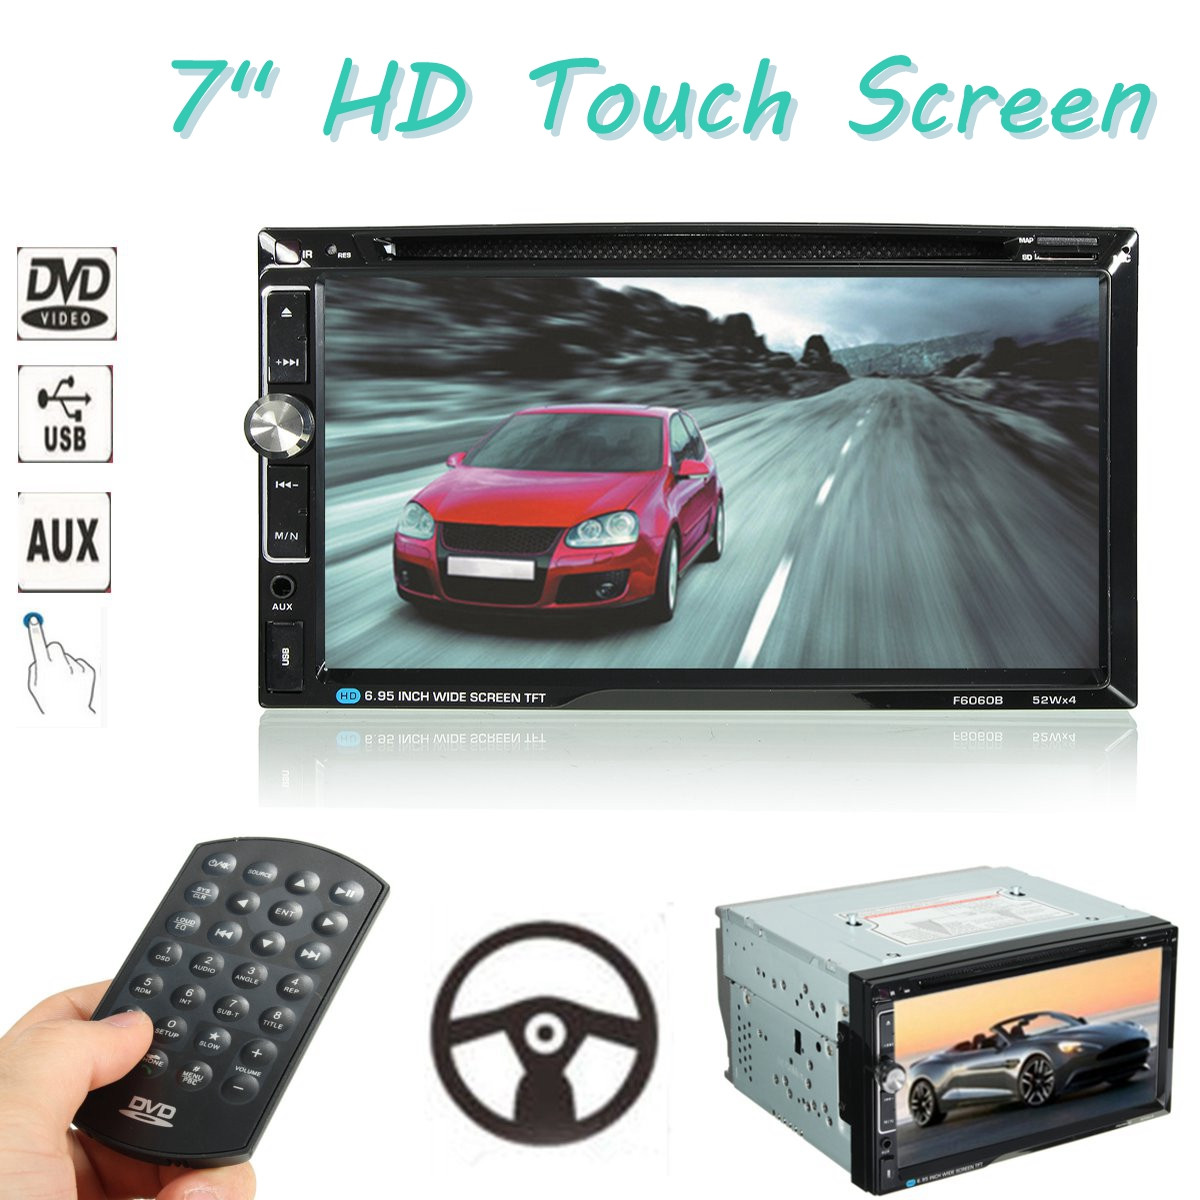 7 inch 2 Din 52W * 4 Universal Car Stereo DVD Radio Player bluetooth FM MP3 MP4 Radio Aux Entertainment Multimedia Player 7 inch 2 Din 52W * 4 Universal Car Stereo DVD Radio Player bluetooth FM MP3 MP4 Radio Aux Entertainment Multimedia Player